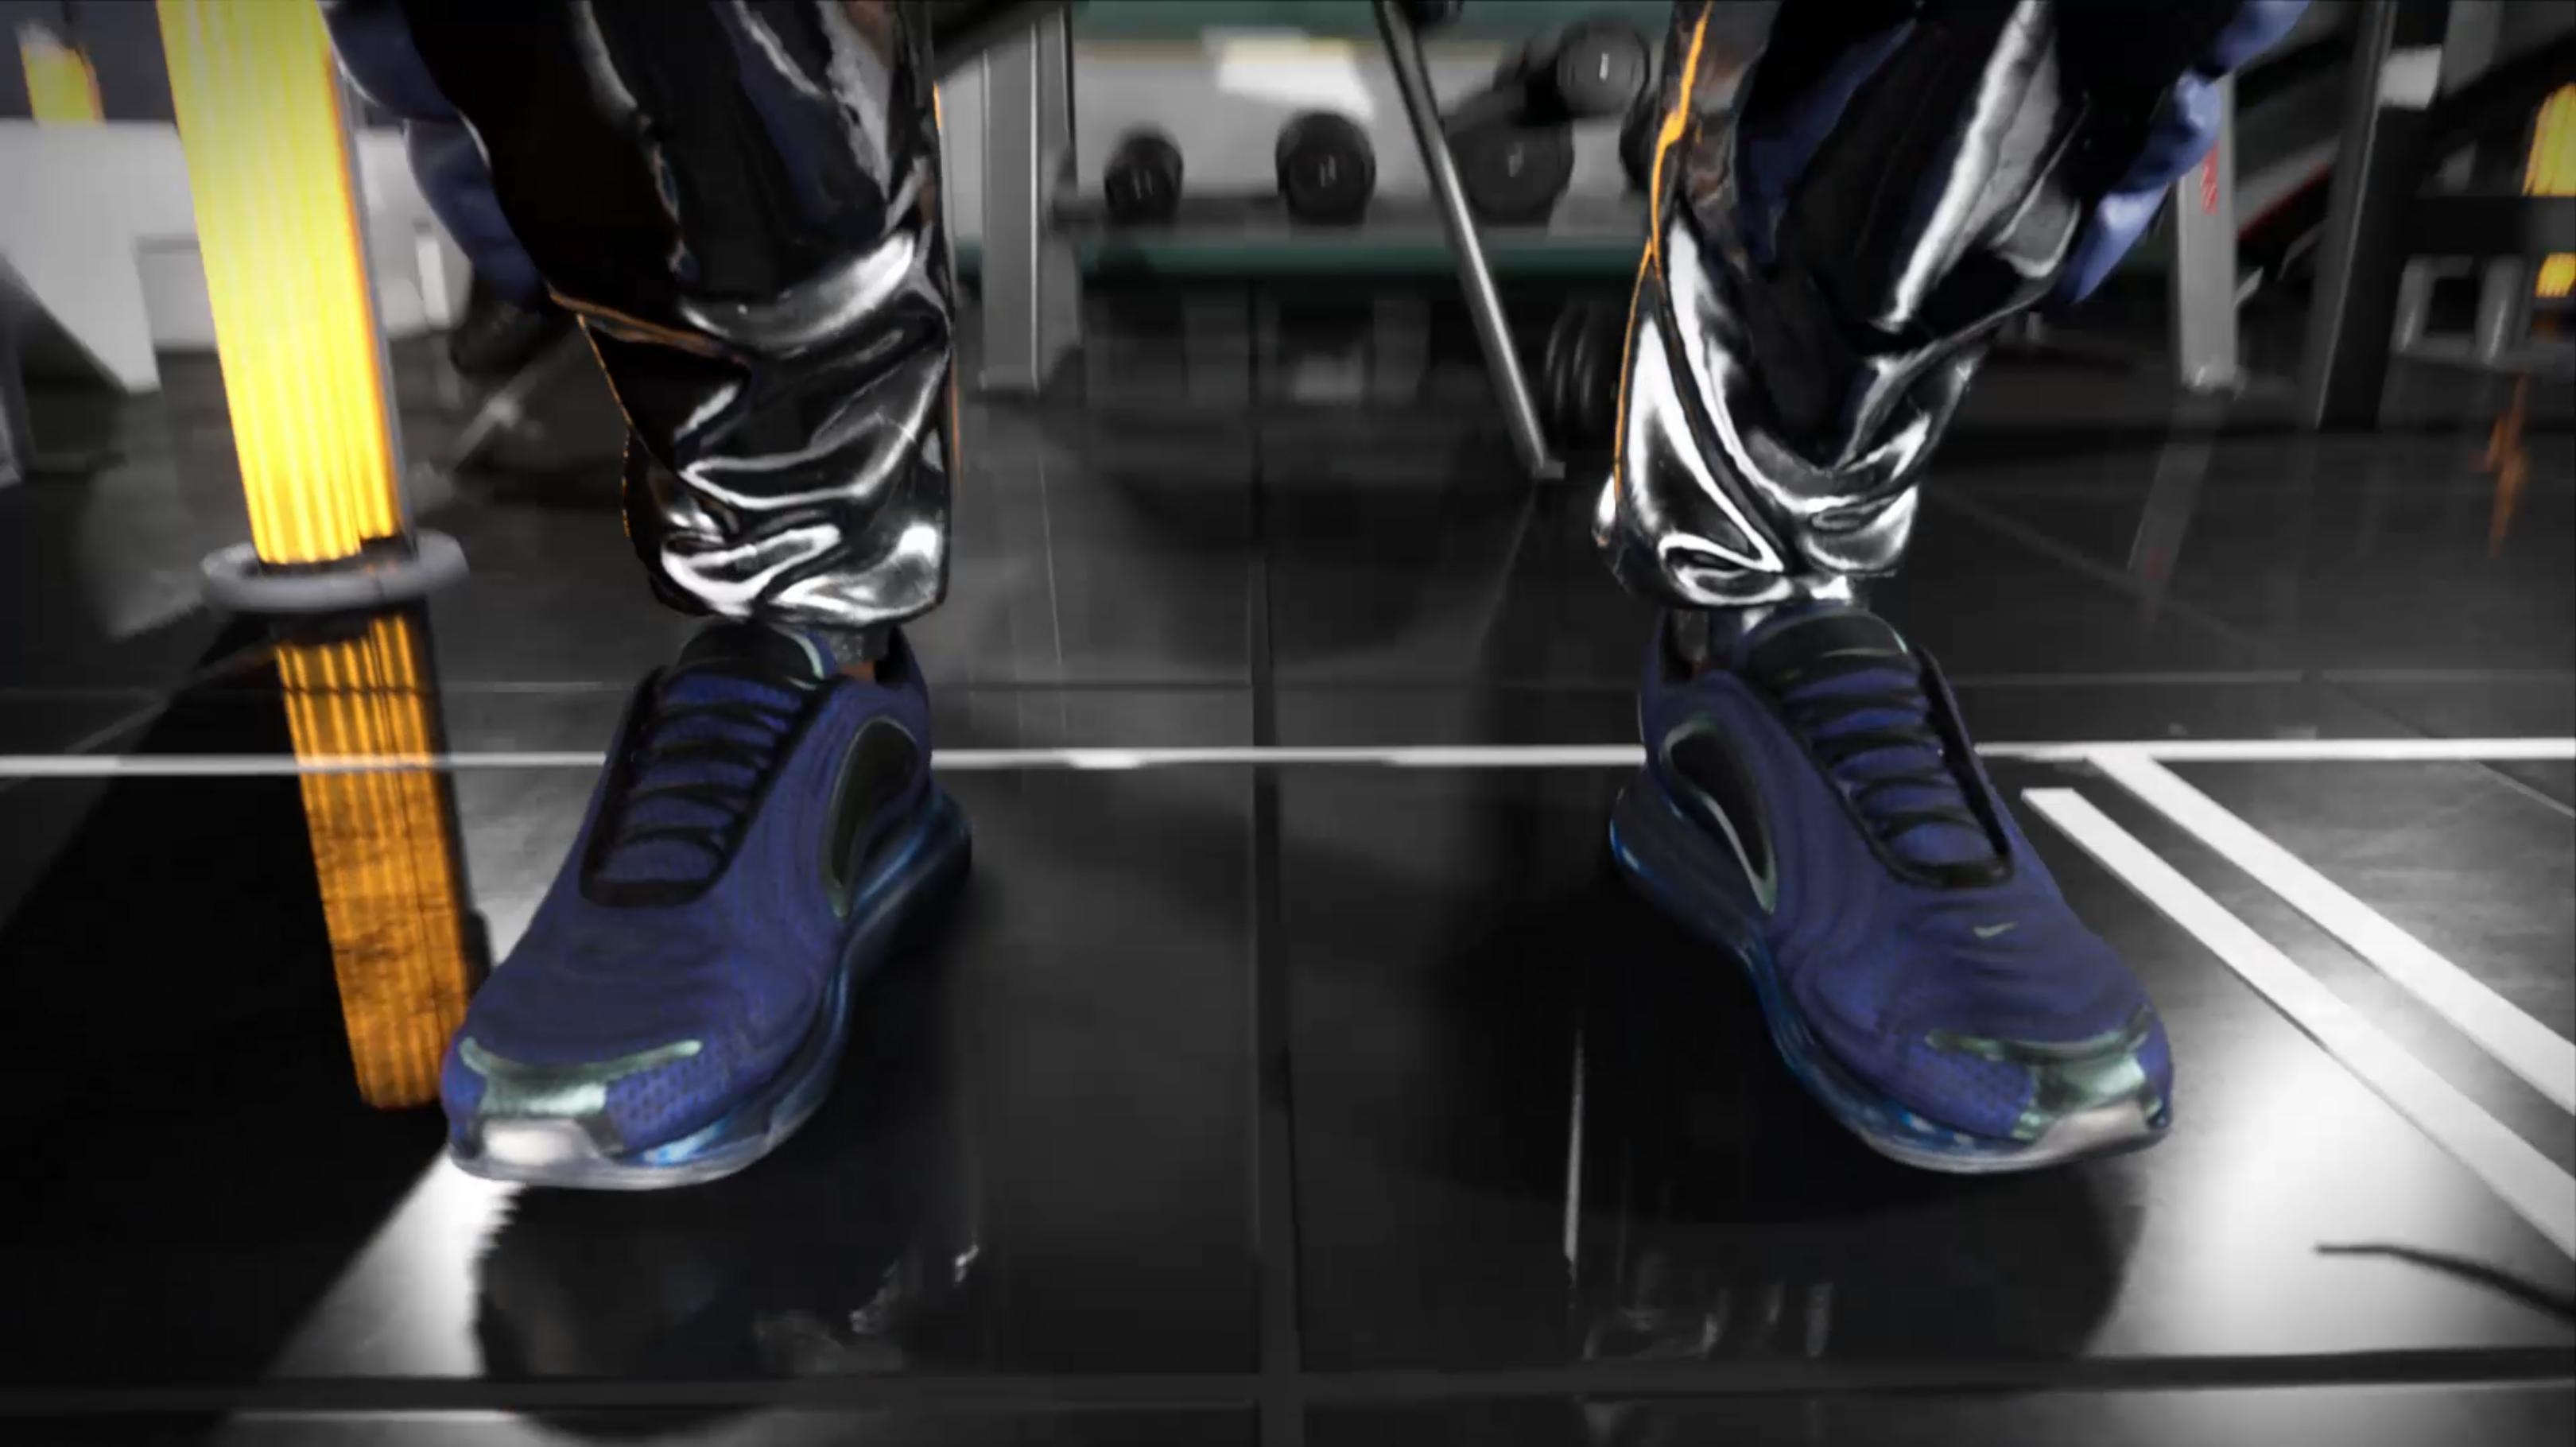 Nike x Dazed Beauty advertising animation, 3D scanning by Form Capture for artist Rick Farin. 3D scanning shoes. 2 of 3